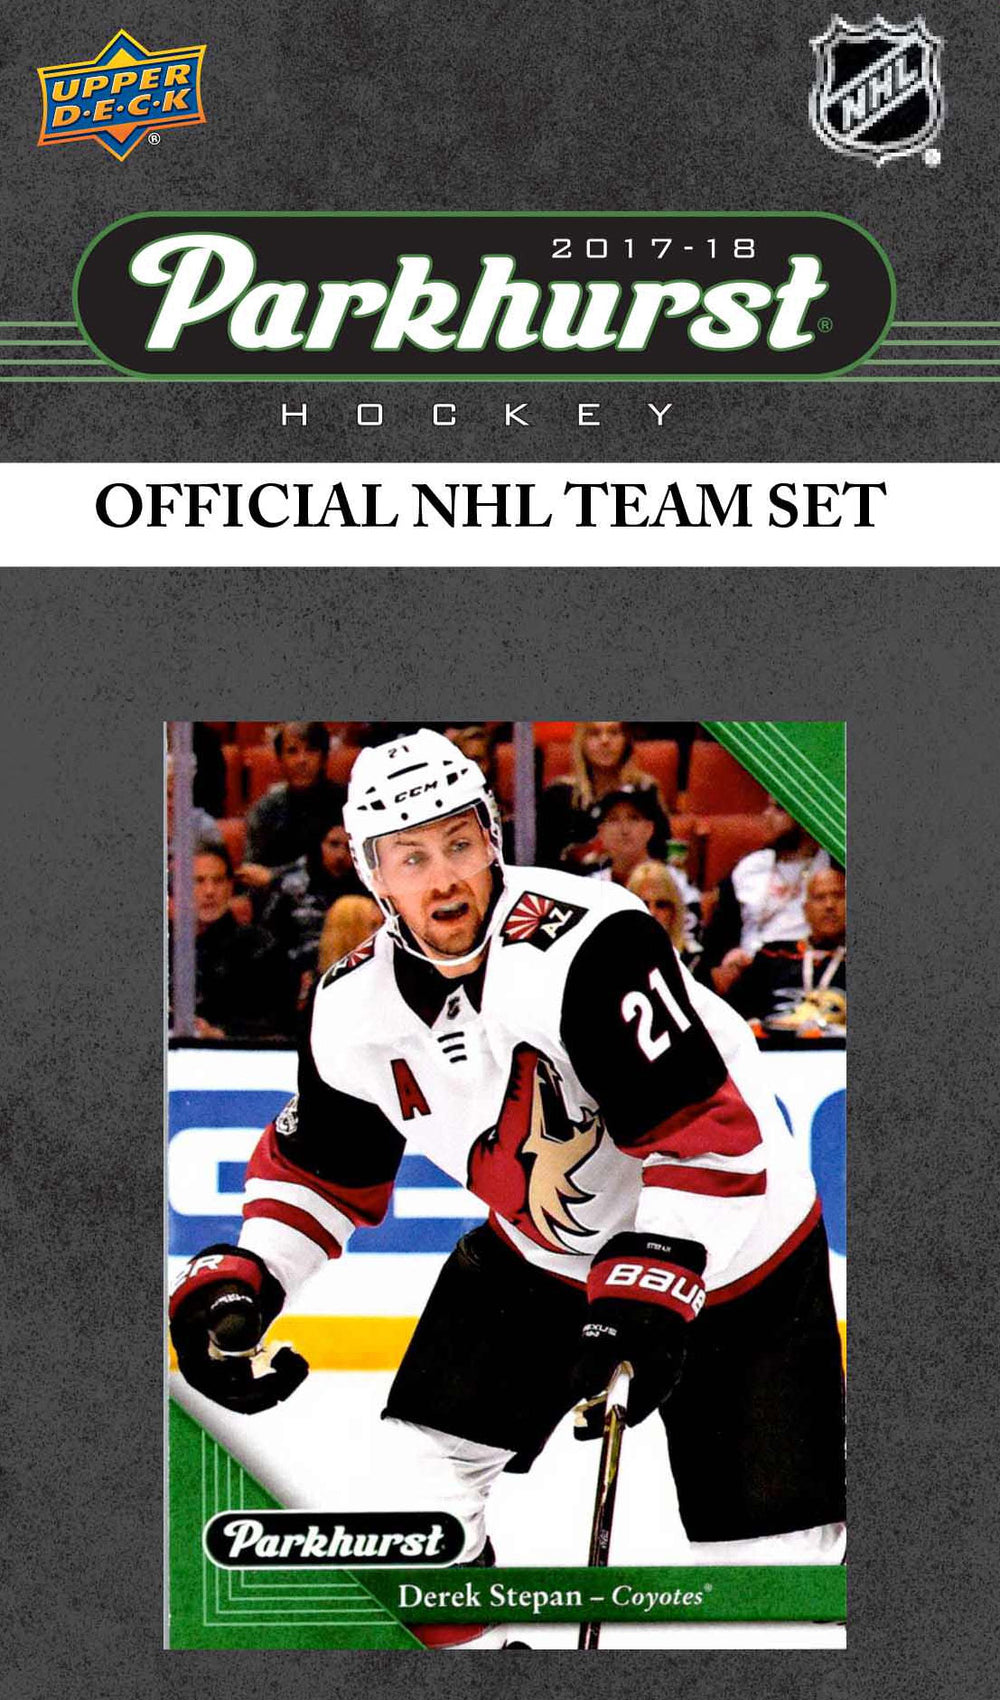 Arizona Coyotes 2017 2018 Upper Deck PARKHURST Factory Sealed Team Set